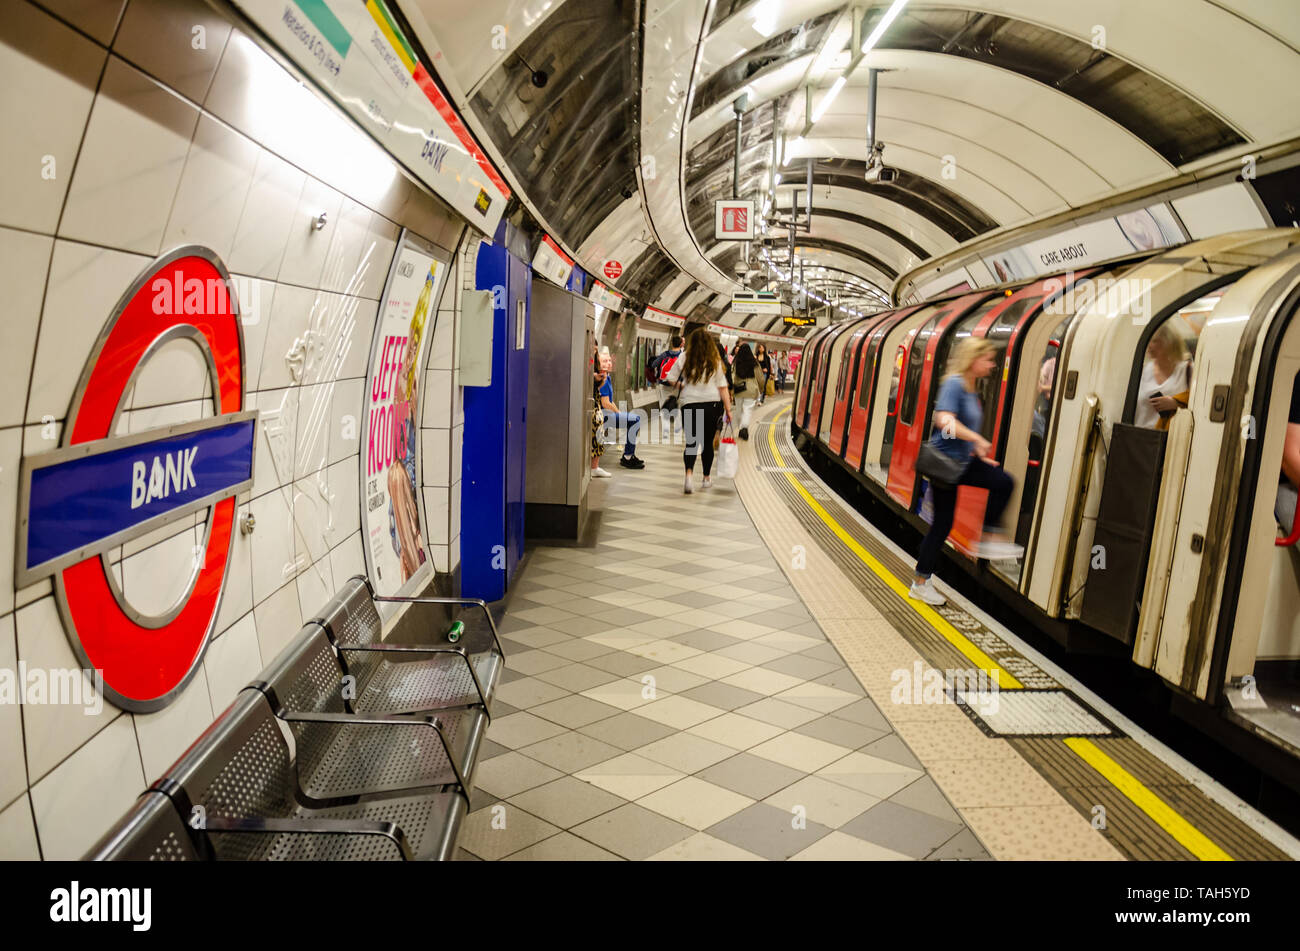 Passengers board a Central Line London underground Train at Bank subway station. - Stock Image